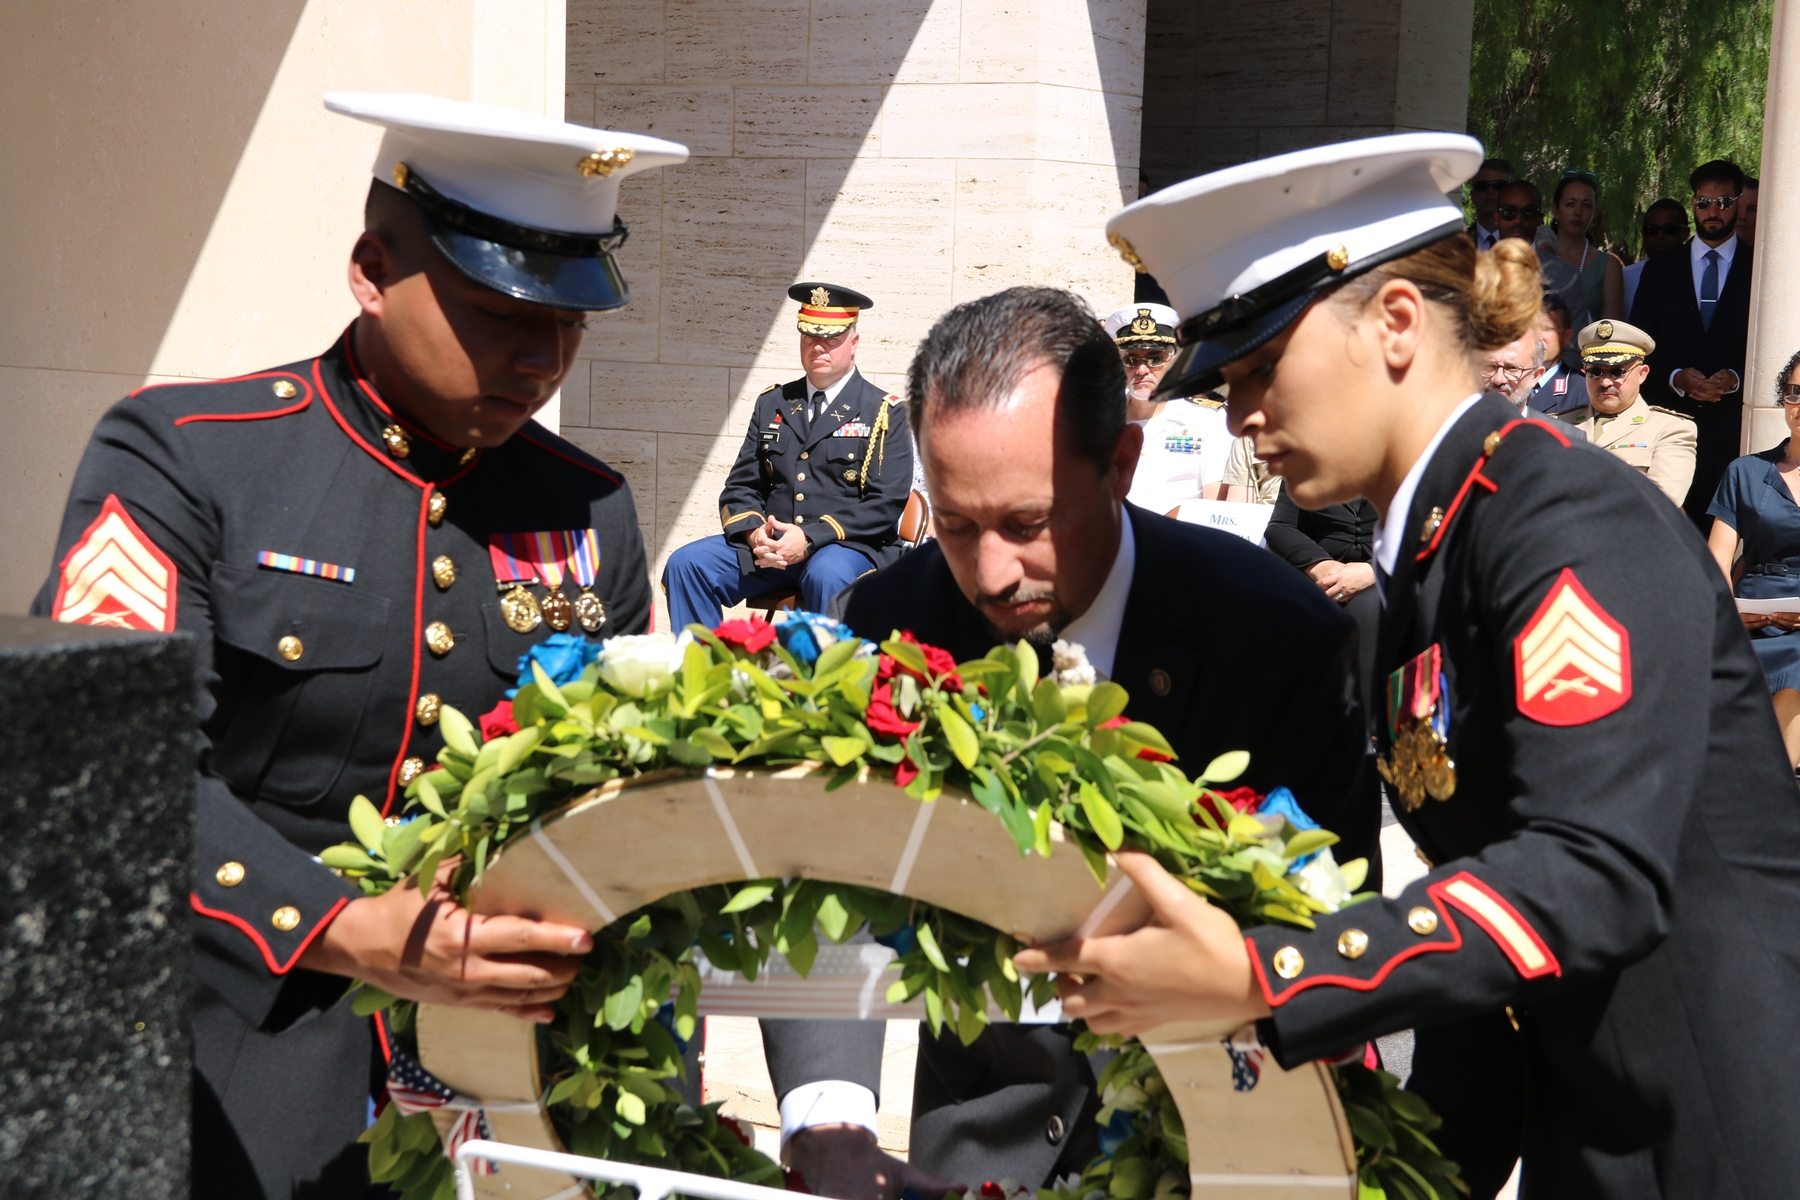 Amb. Daniel Rubinstein, U.S. Ambassador to Tunisia, lays a wreath during the Memorial Day ceremony at the North Africa American Cemetery and Memorial in Carthage, Tunisia May 29, 2017. (U.S. Embassy Tunis photo by Zouhair Sfaxi/Released)